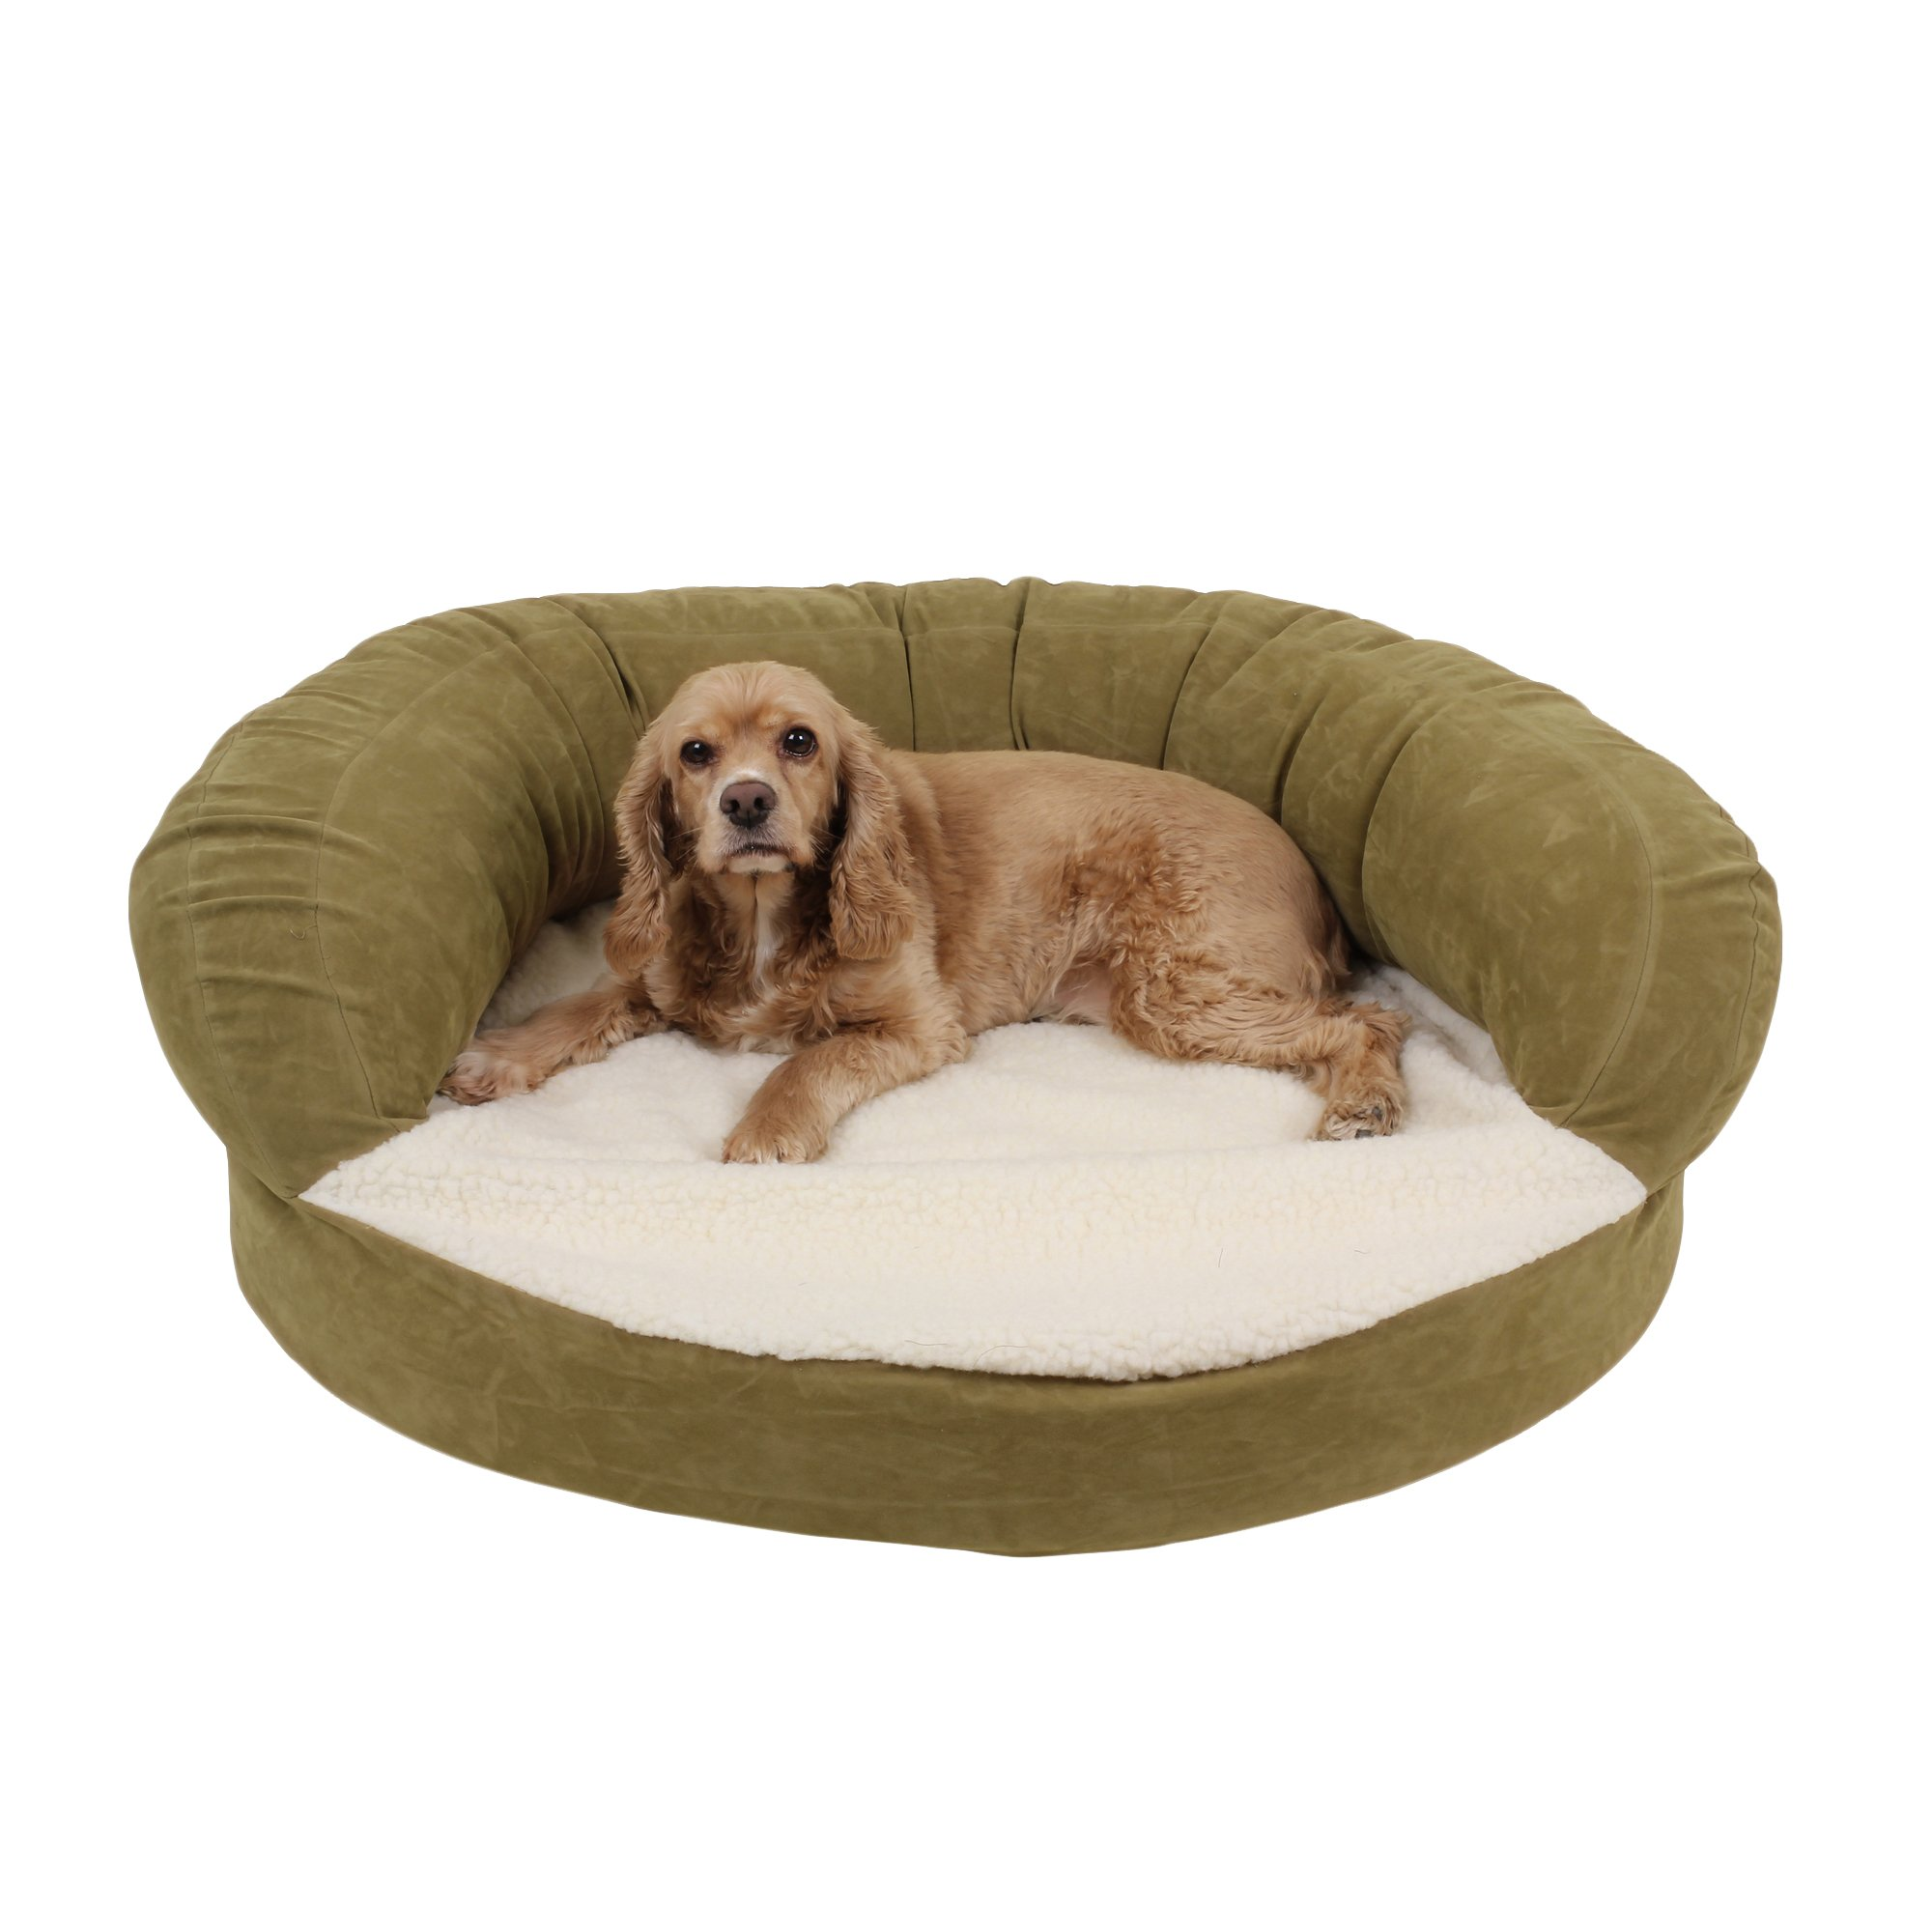 orthopedic dog beds: best orthopedic beds for dogs | petco